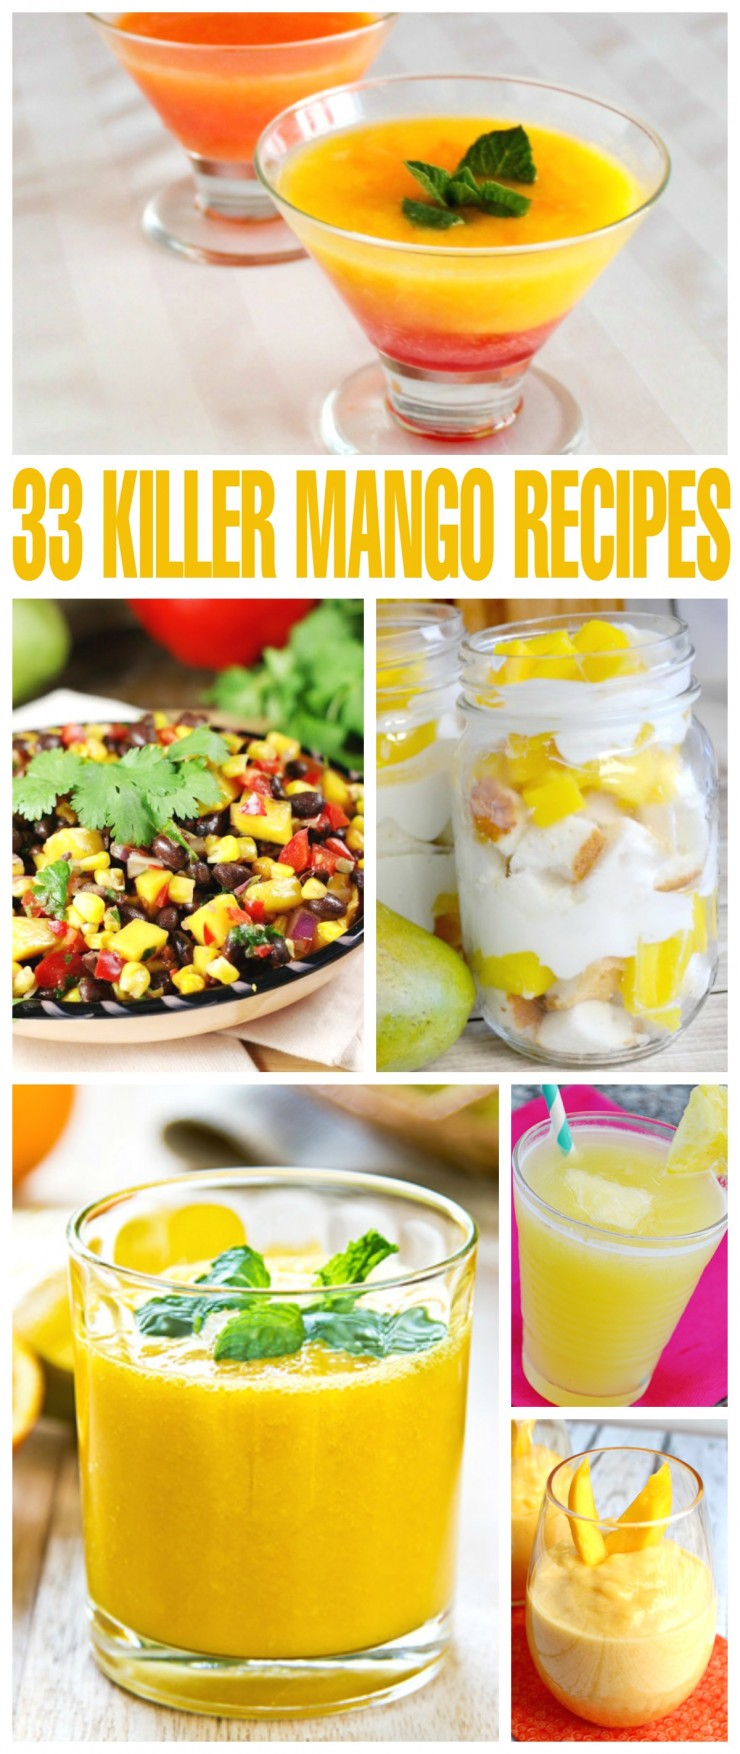 These 33 Mango Recipes full of juicy, sweet mangoes. These recipes are healthy and flavourful - mangoes are perfect in beverages, salads, main dishes and more!